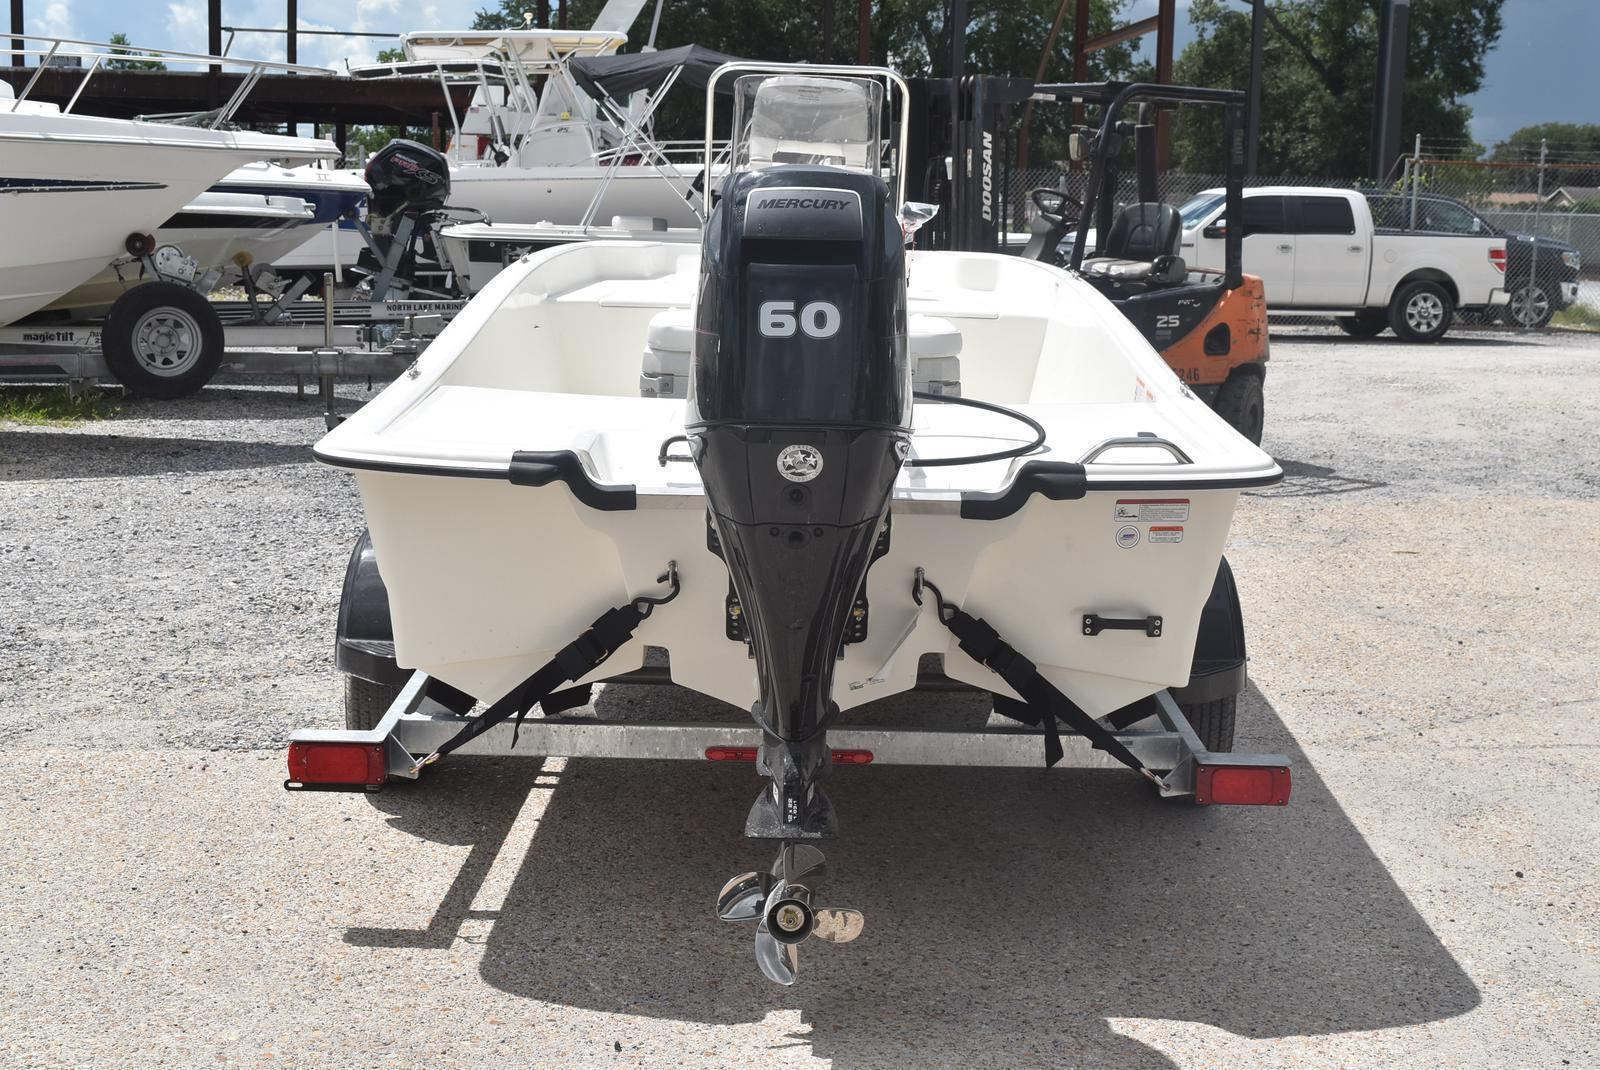 2020 Mako boat for sale, model of the boat is Pro Skiff 17, 75 ELPT & Image # 563 of 702